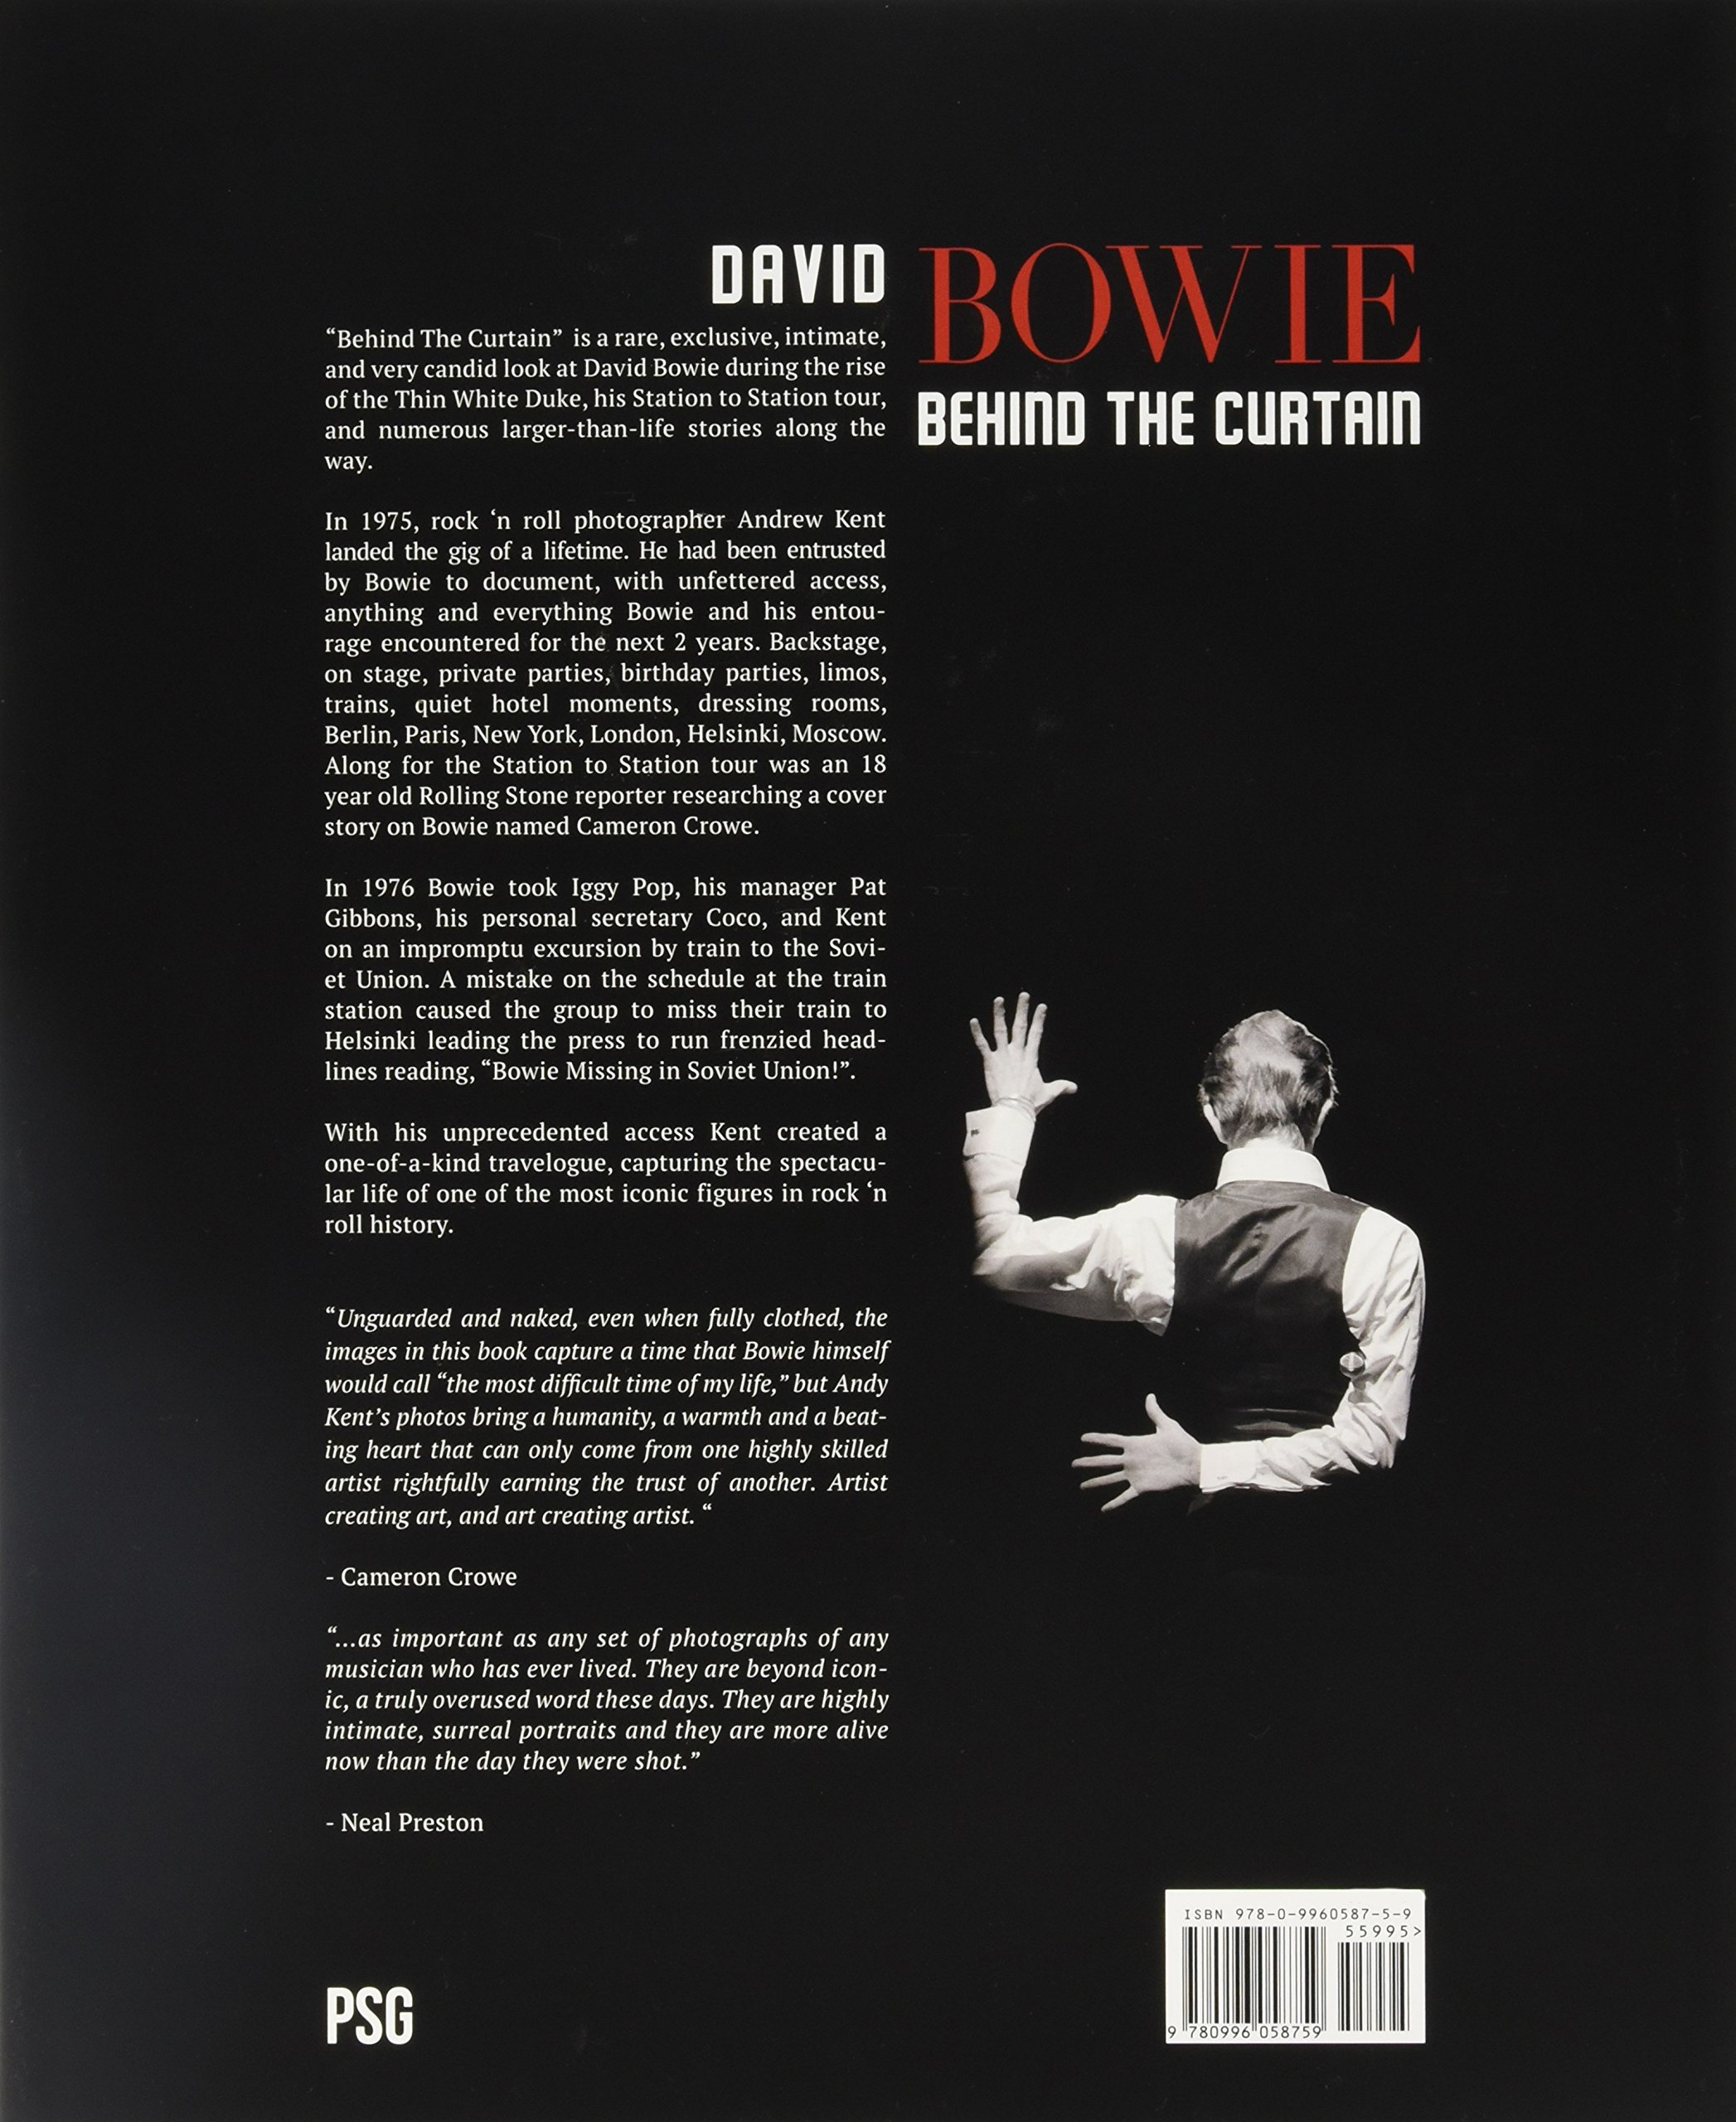 Curtain behind the curtain book - Amazon Com David Bowie Behind The Curtain 9780996058759 Andrew Kent Books